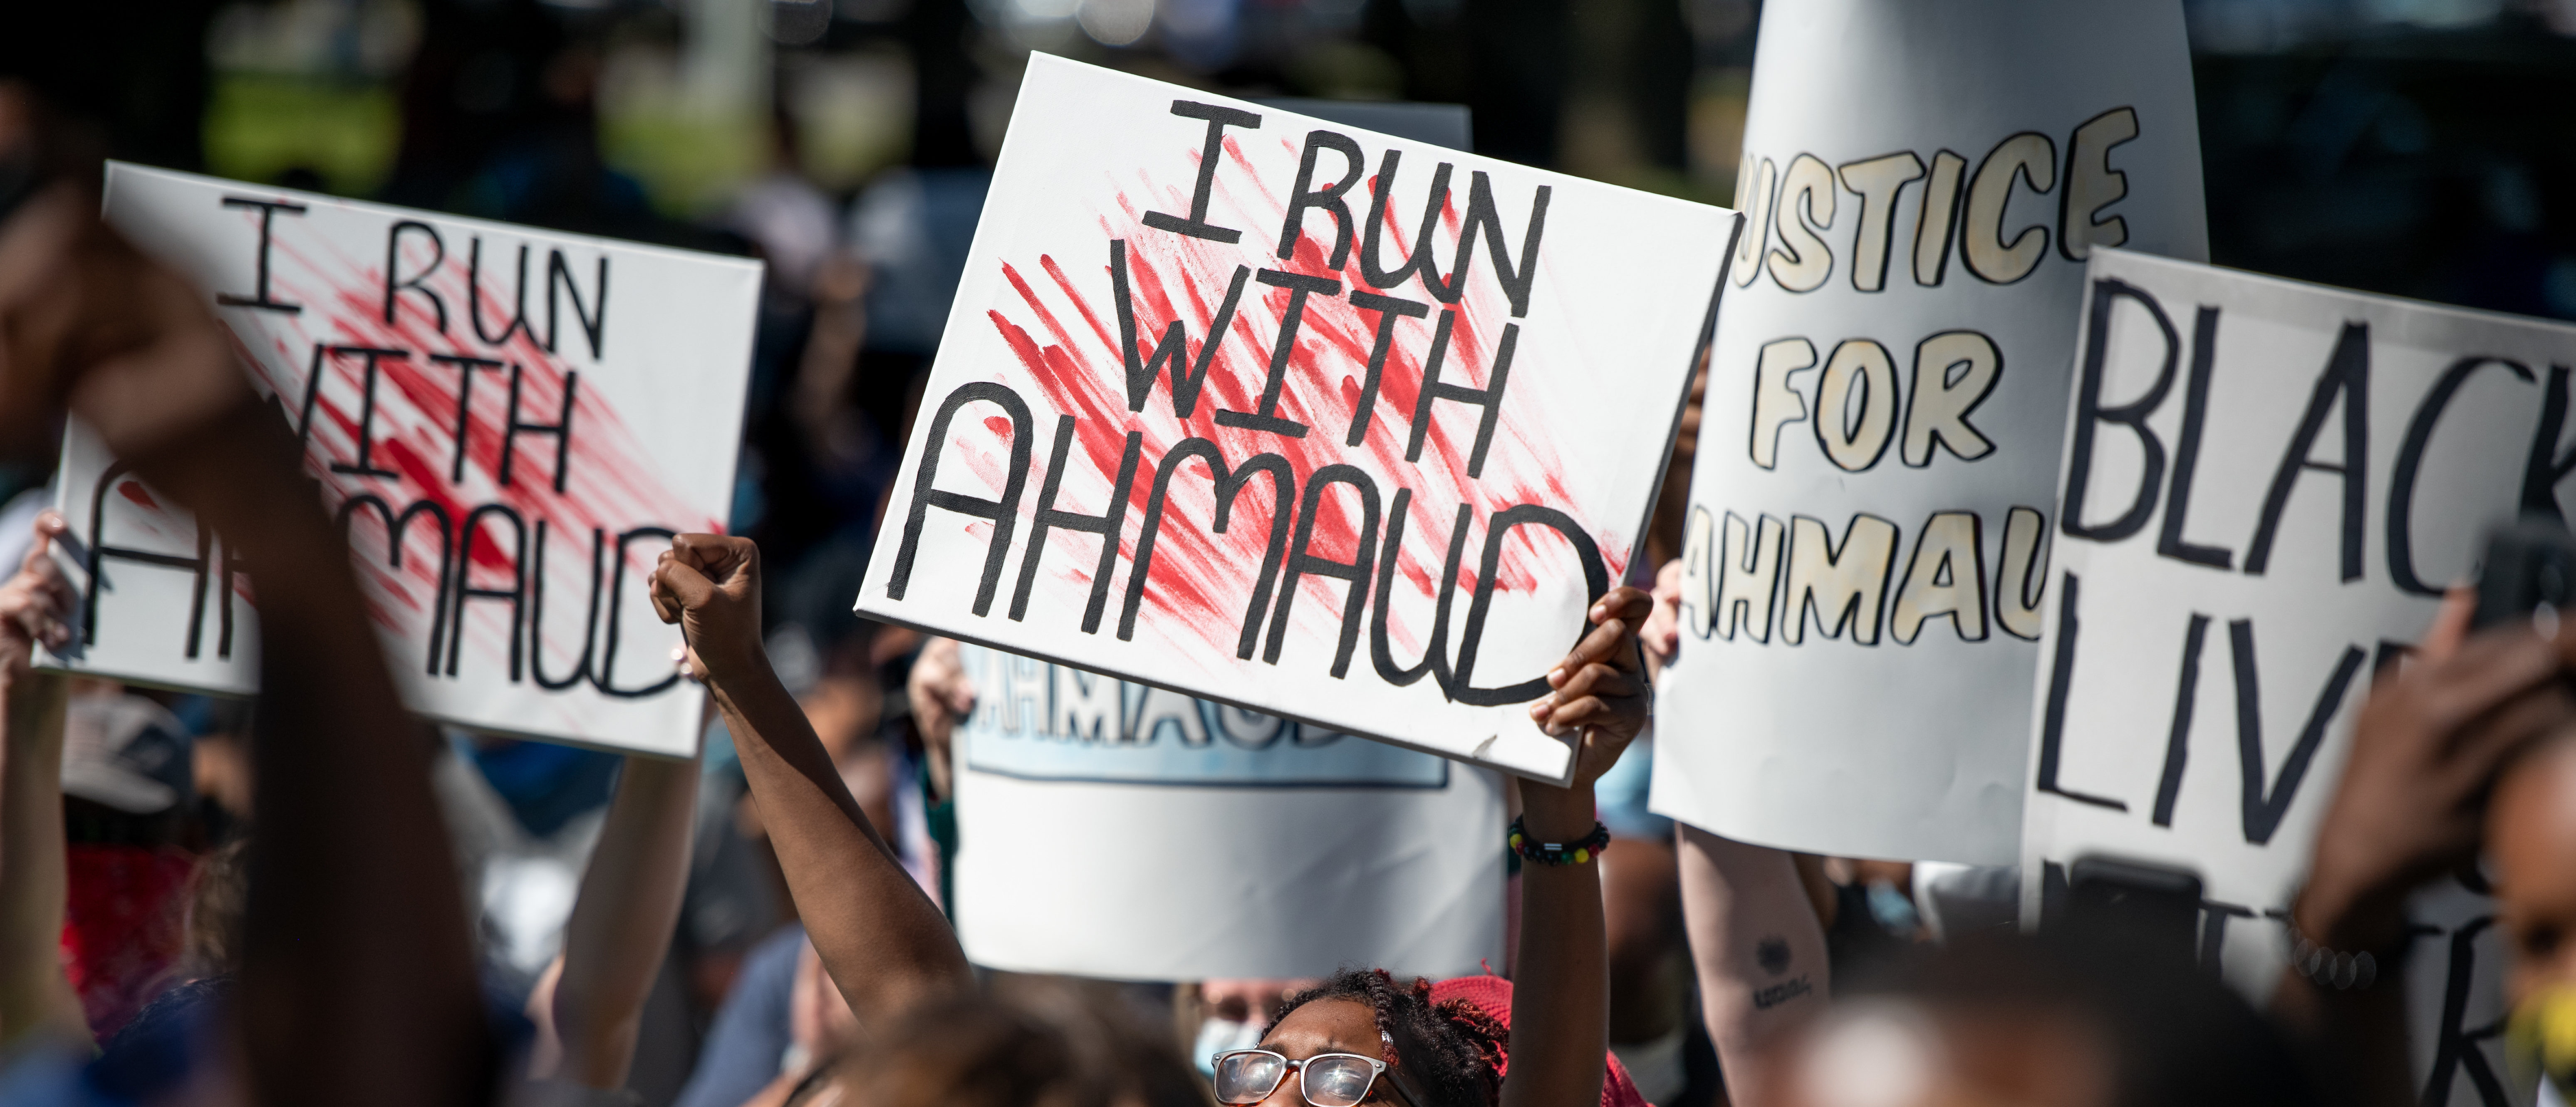 BRUNSWICK, GA - MAY 08: Demonstrators protest the shooting death of Ahmaud Arbery at the Glynn County Courthouse on May 8, 2020 in Brunswick, Georgia. Gregory McMichael and Travis McMichael were arrested the previous night and charged with murder. (Photo by Sean Rayford/Getty Images)